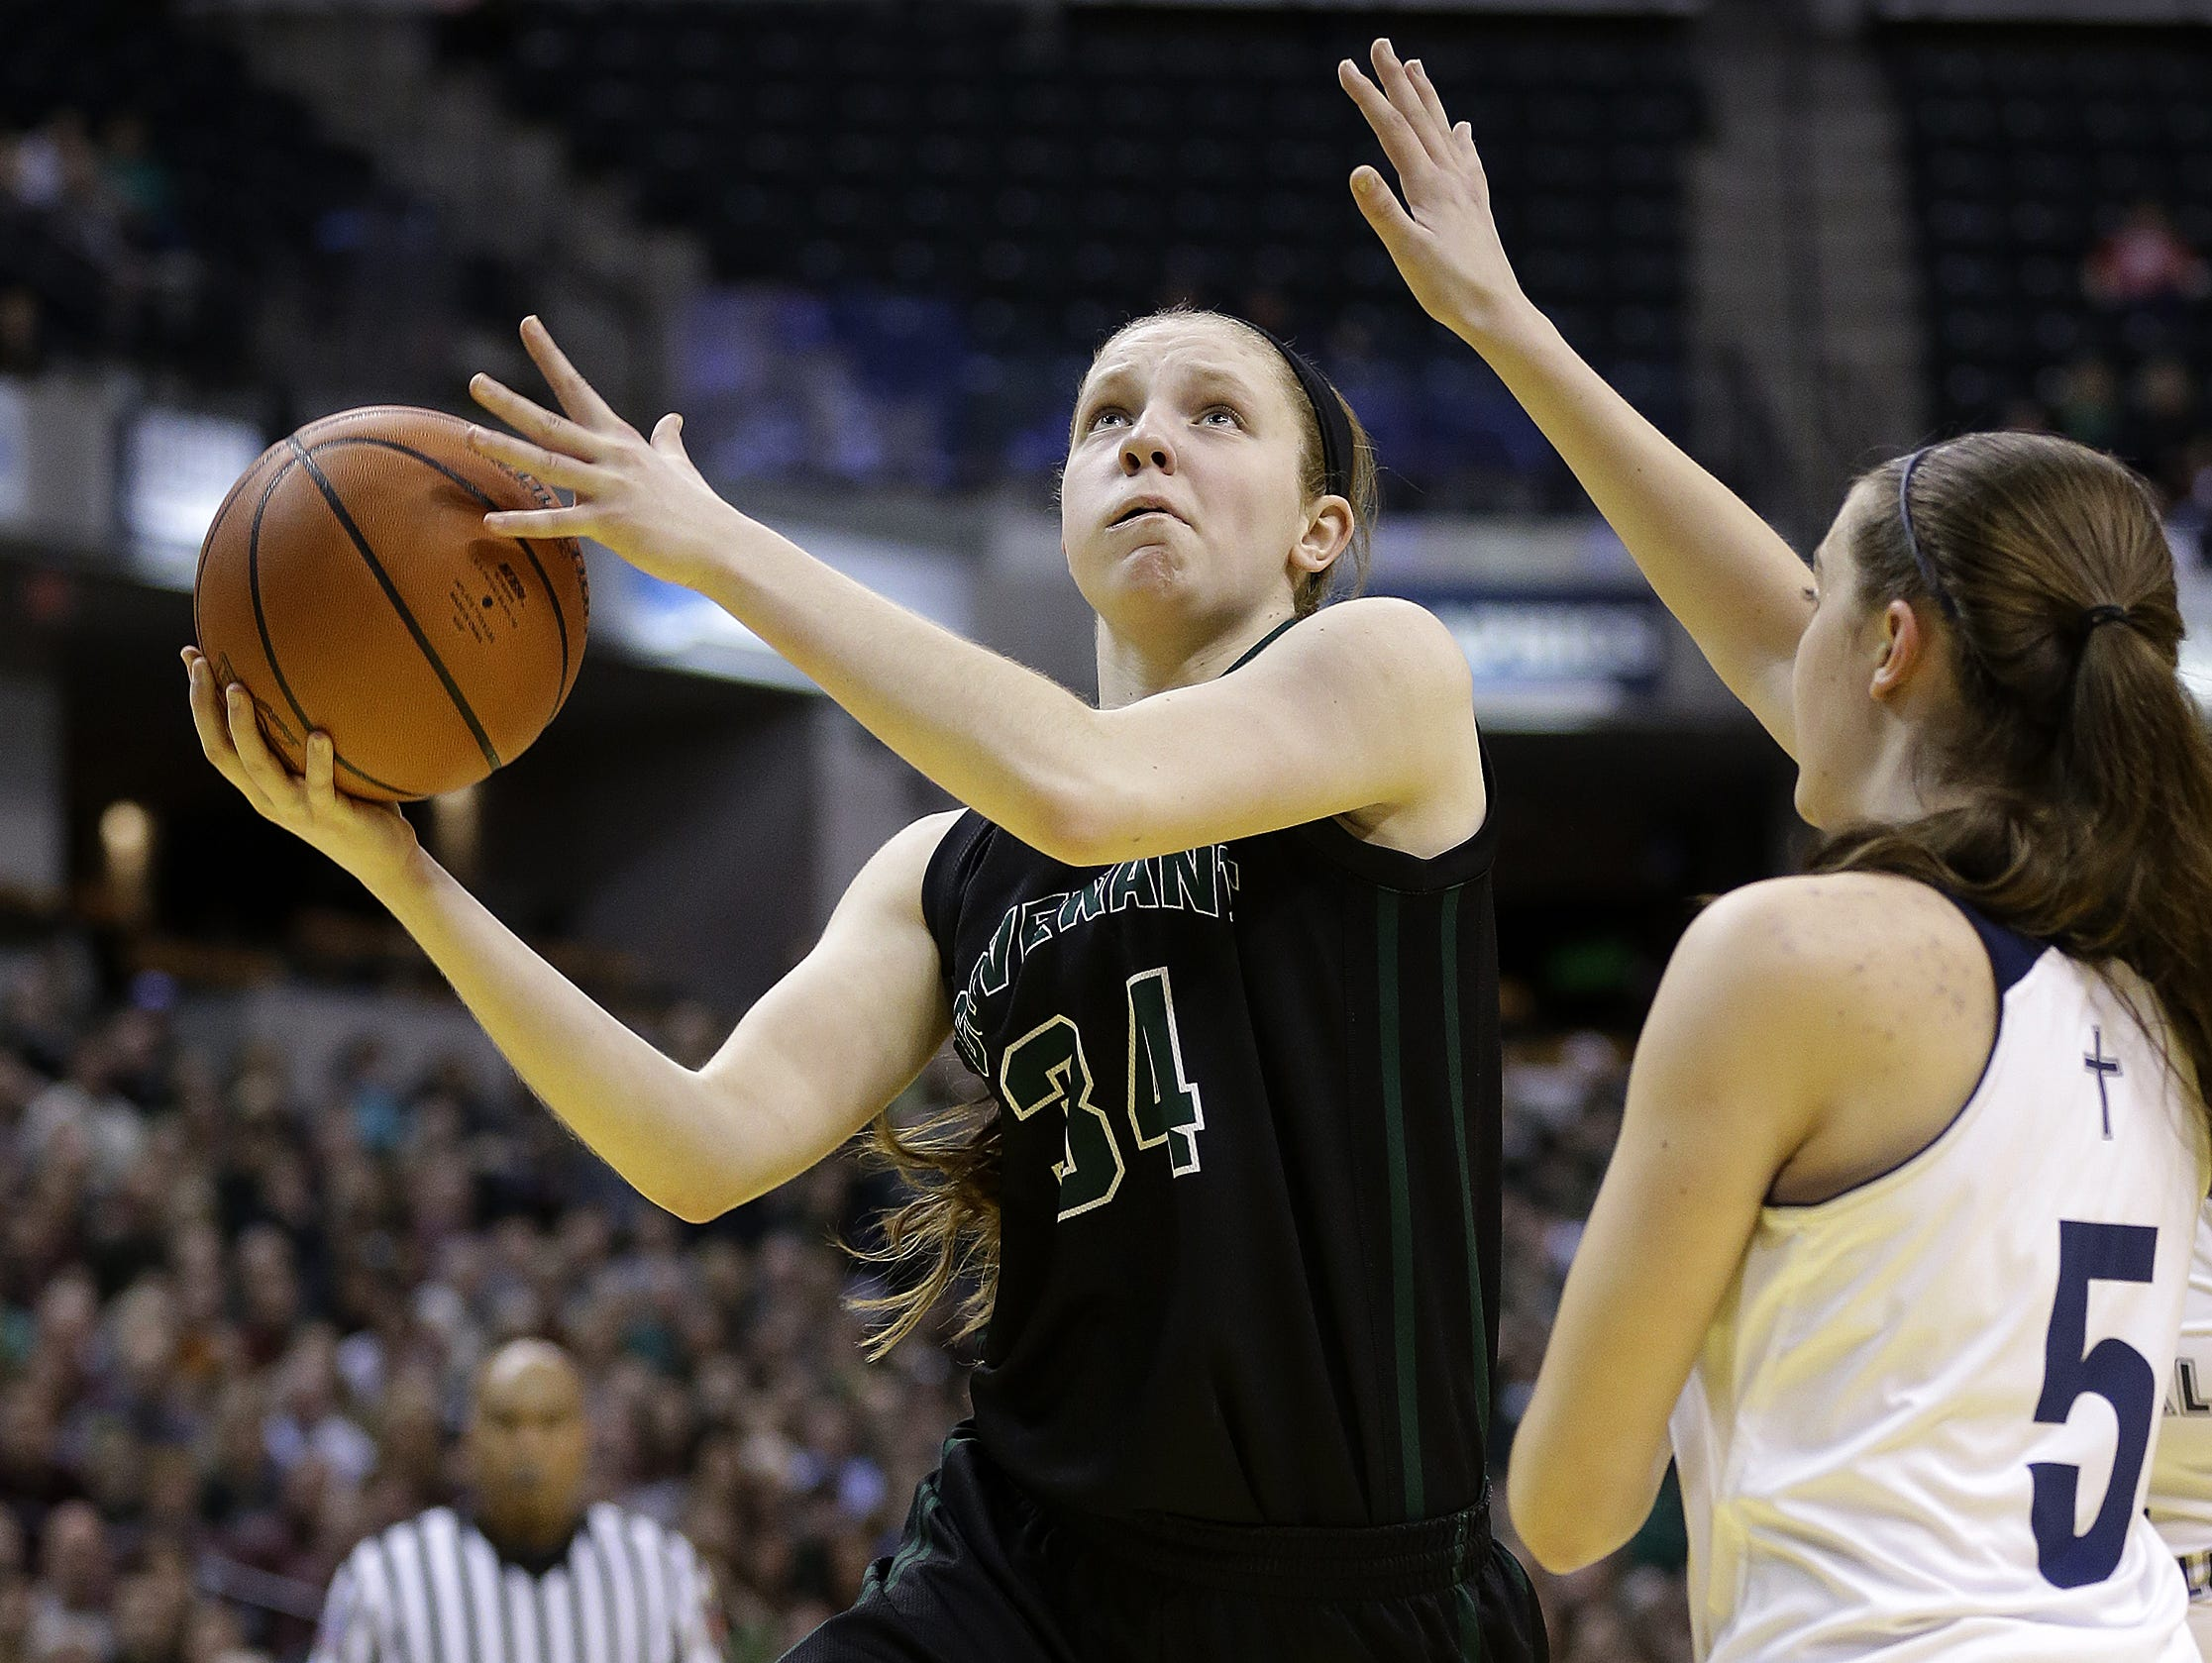 Rachel McLimore, who transferred to Zionsville this summer, led Covenant Christian to the Class 2A state title game last year.